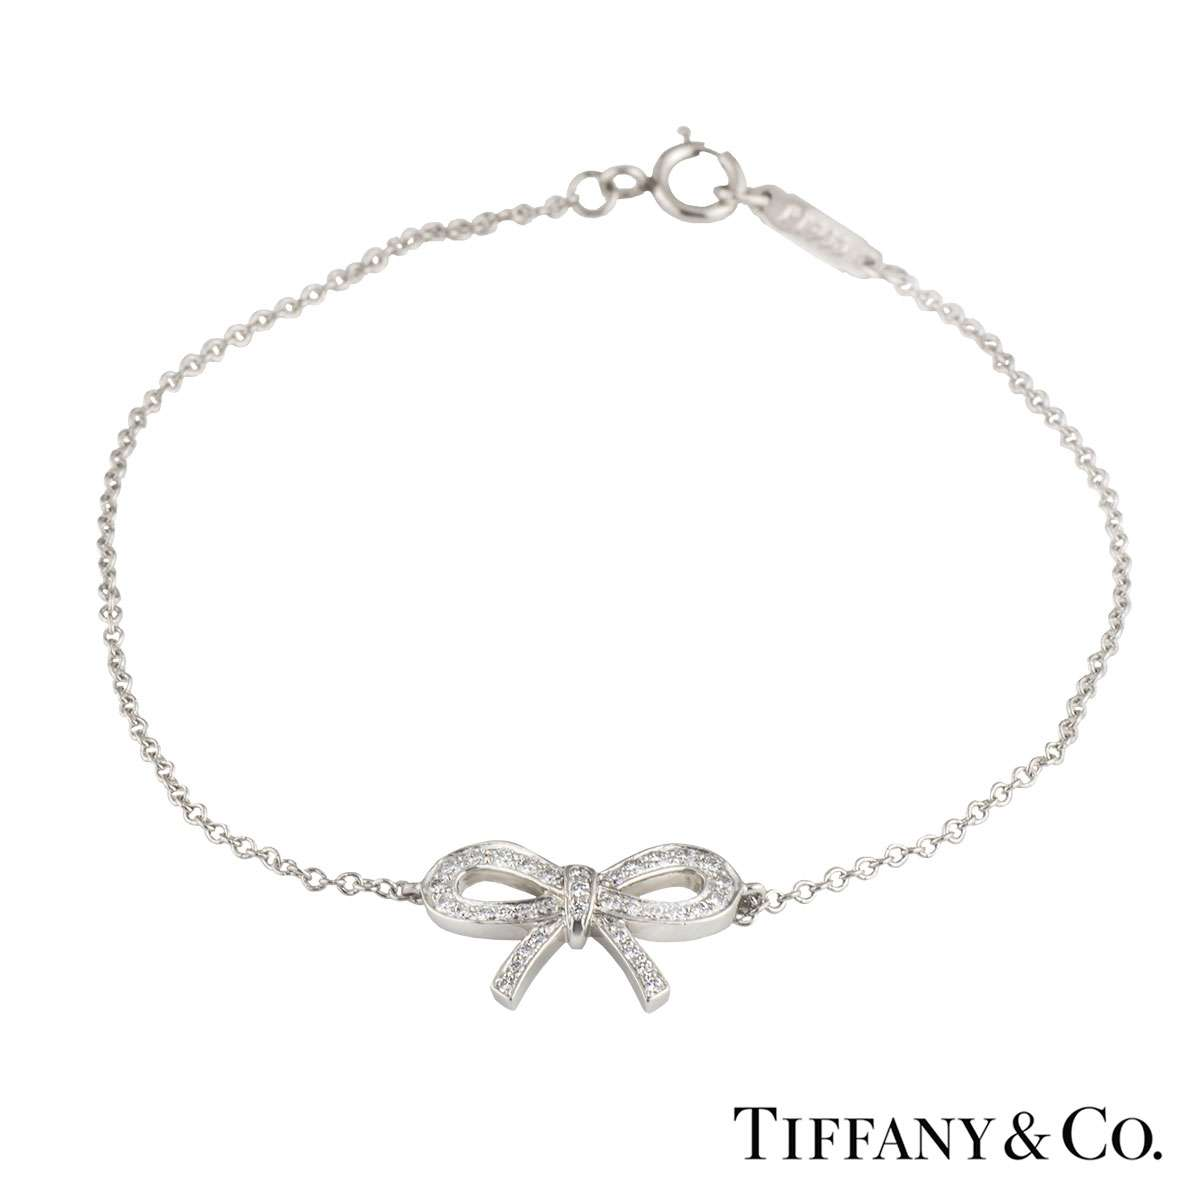 Tiffany & Co. Platinum and Diamond Bow Bracelet